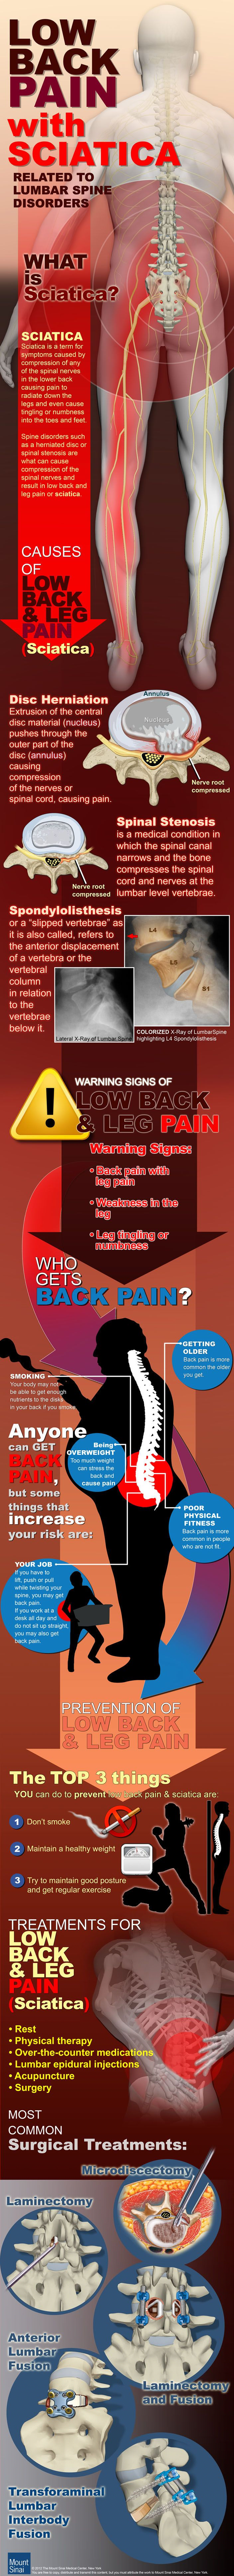 Low back pain with sciatica is among the most common medical conditions.